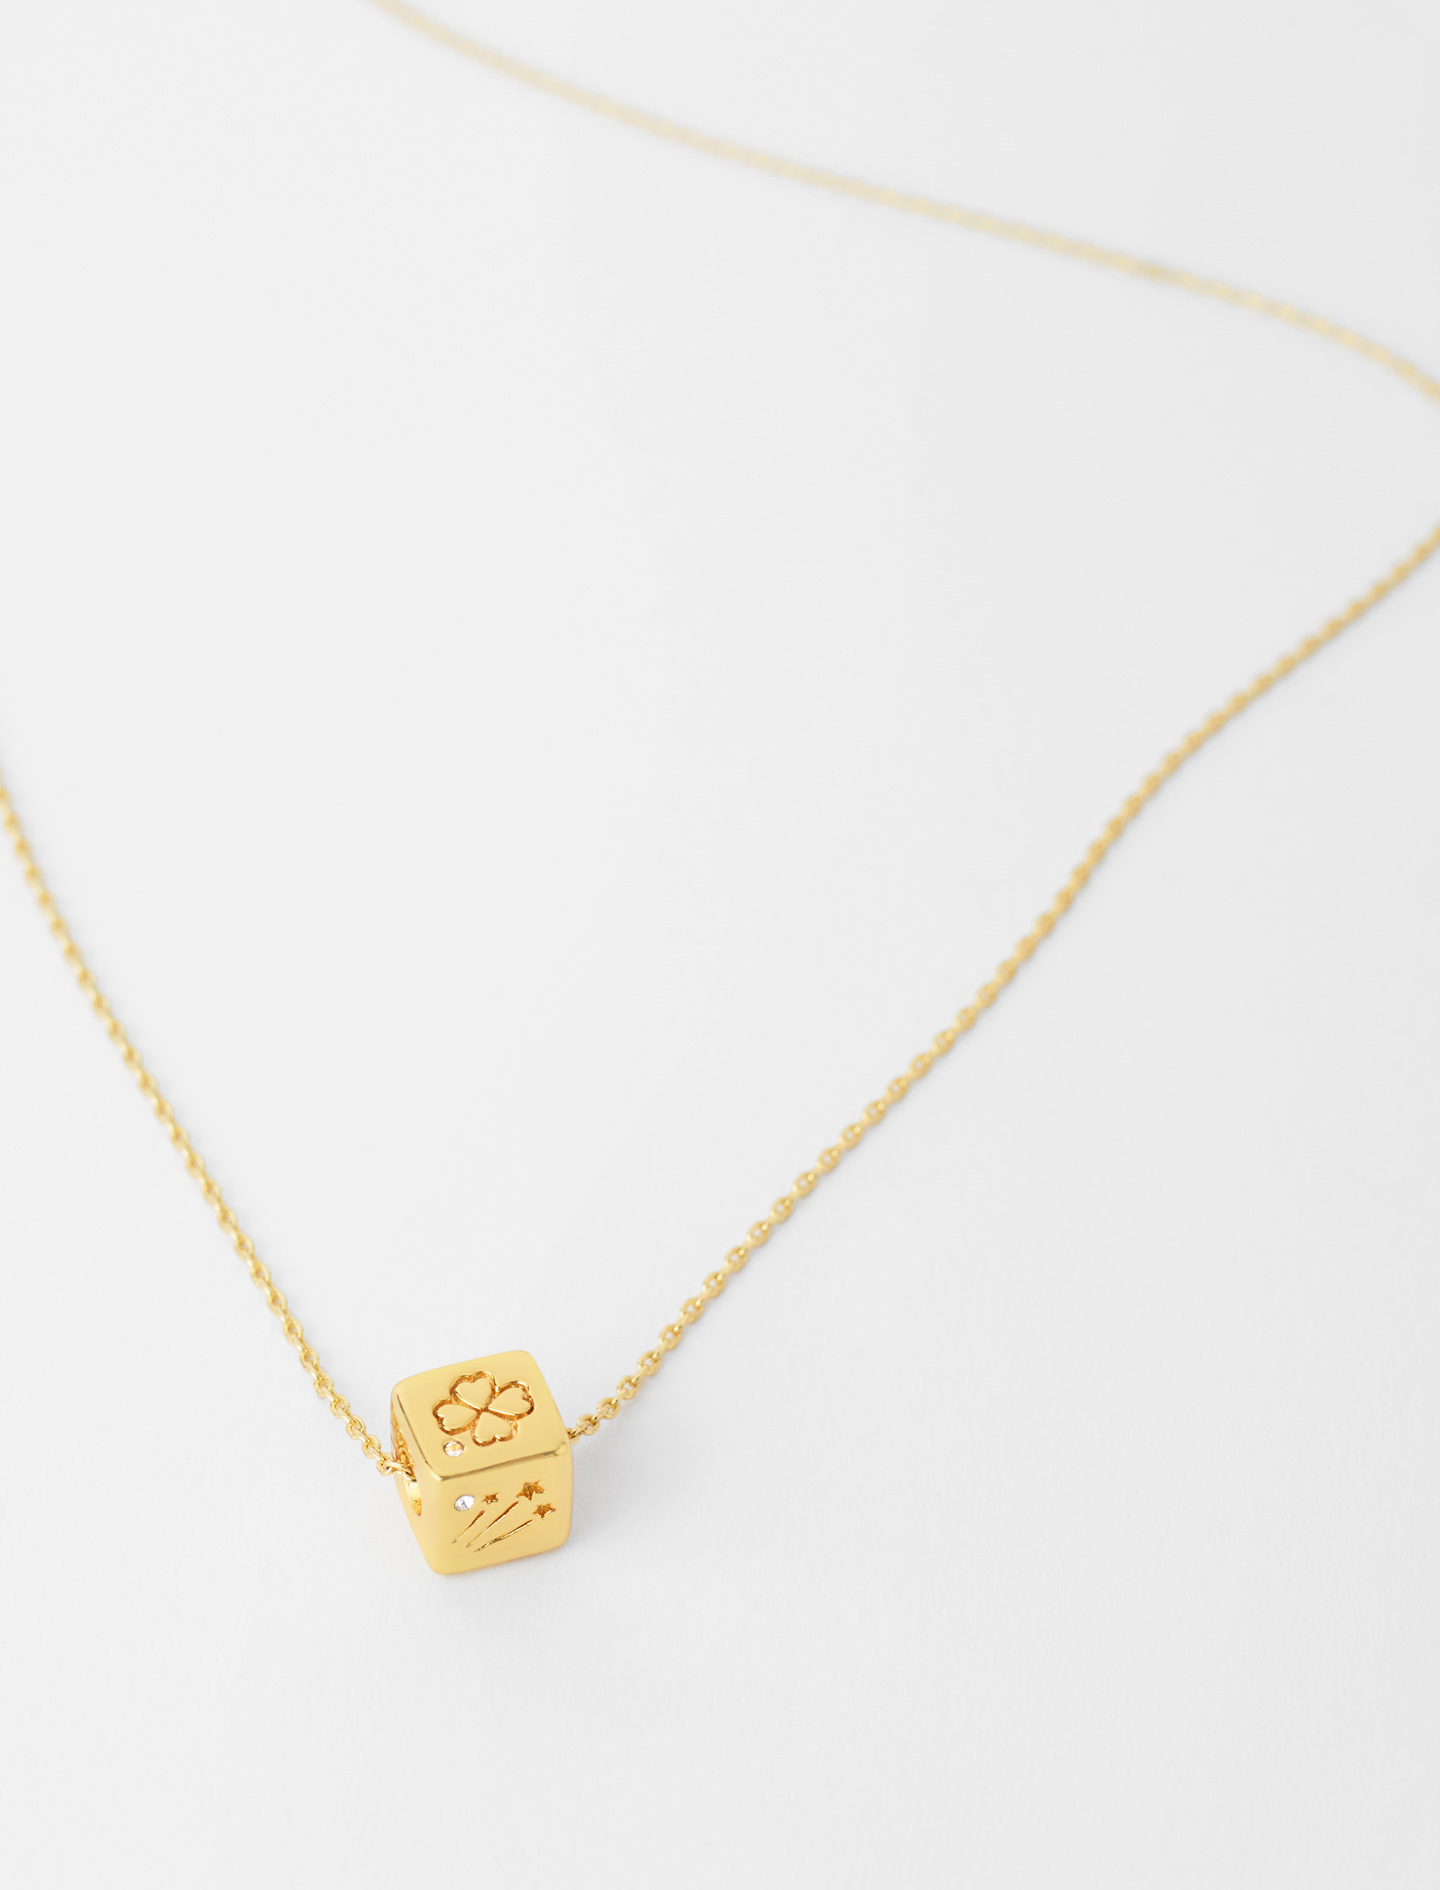 Number 5 dice necklace - Gold